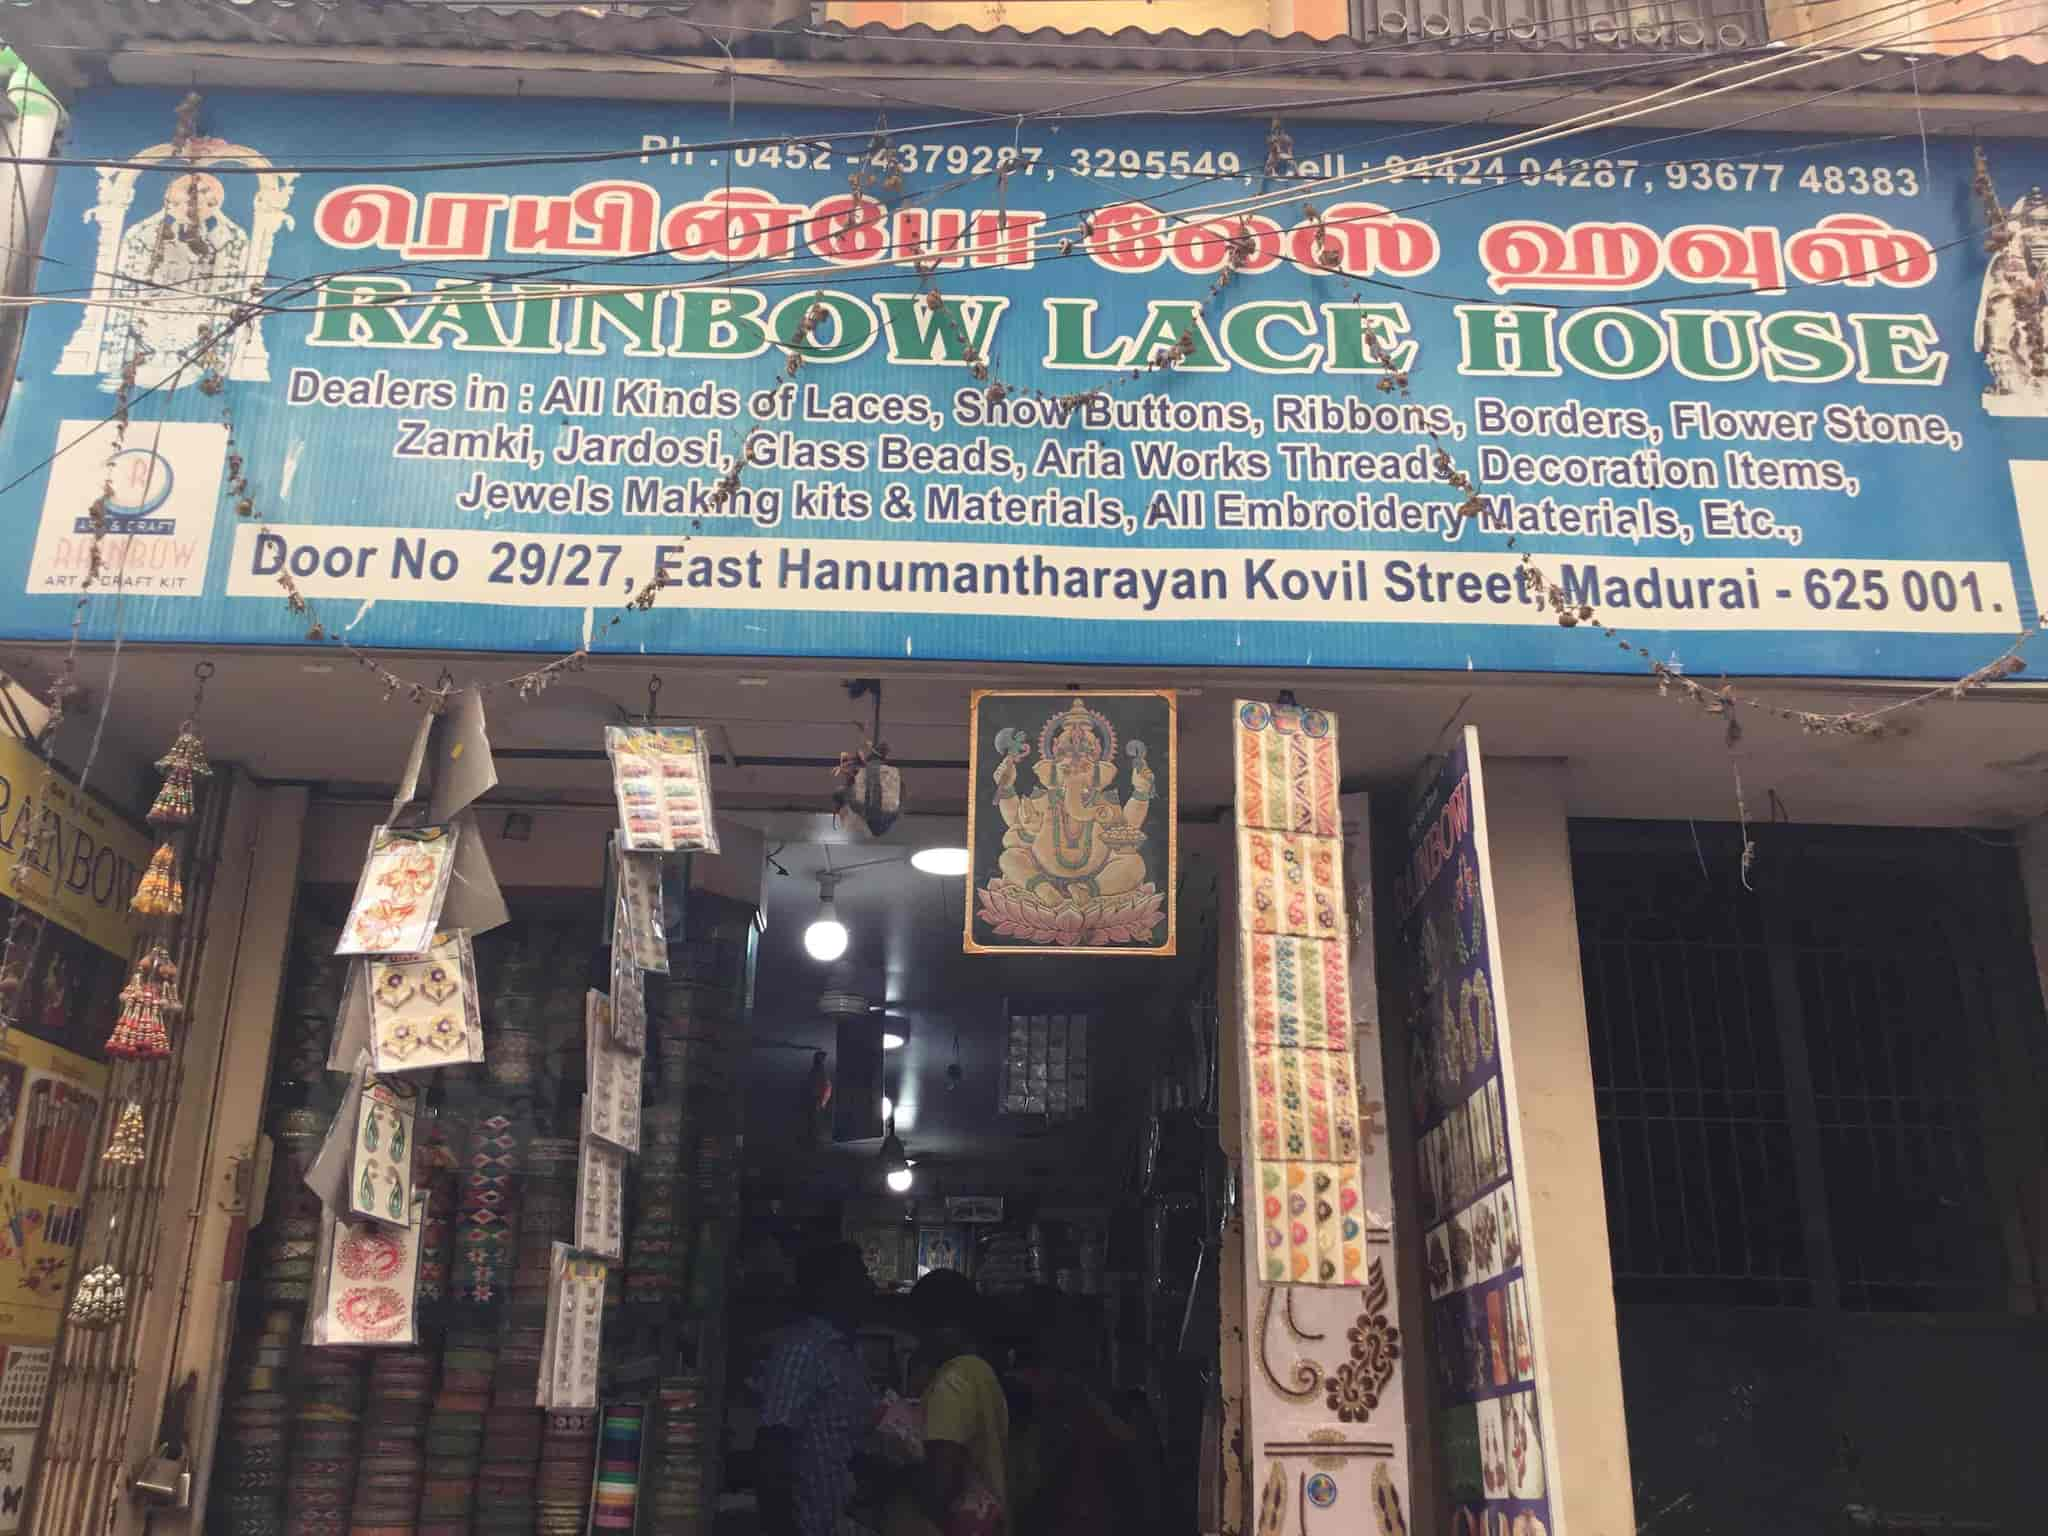 Rainbow lace house art material wholesalers in madurai justdial solutioingenieria Images